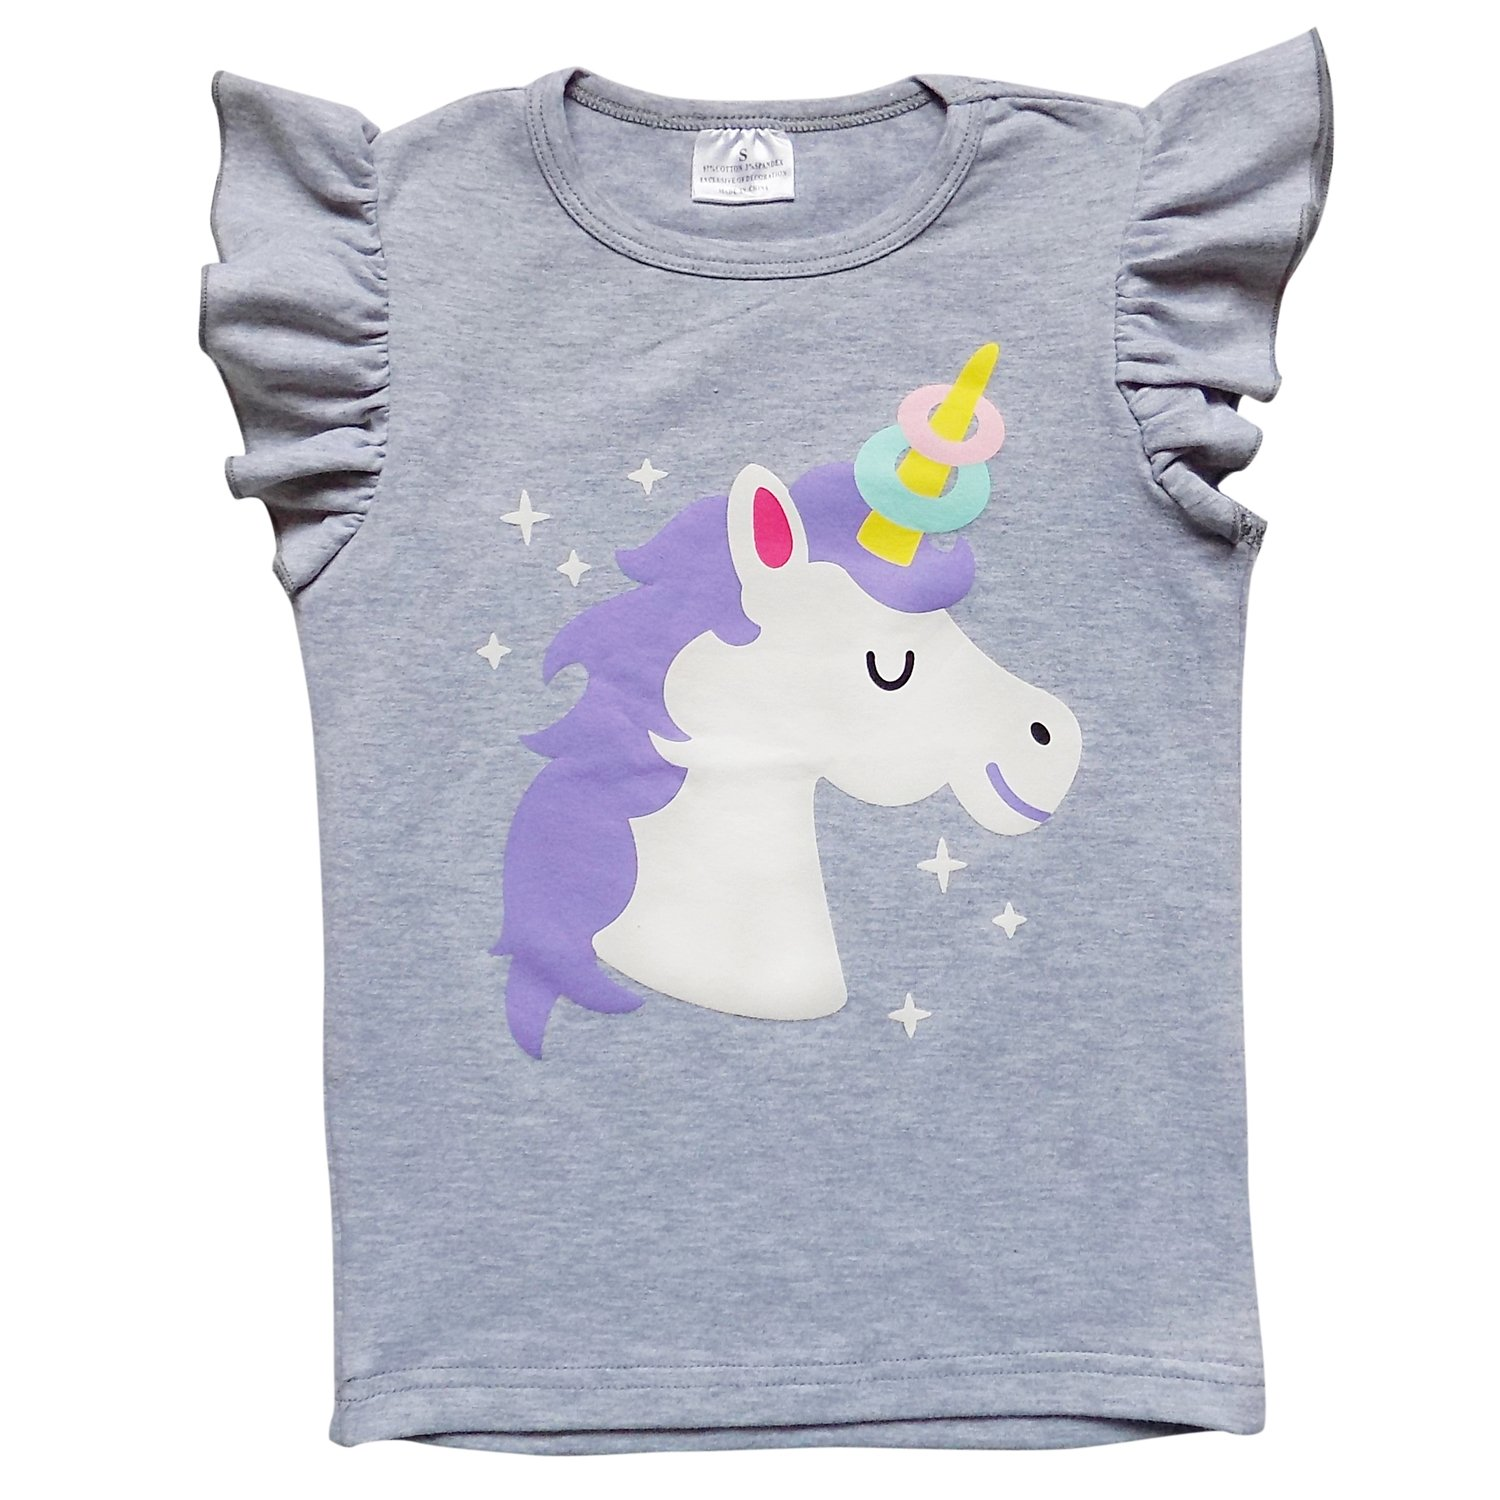 So Sydney Toddler & Girls Summer Raglan Flutter Sleeve Novelty T-Shirt (XL (6), Donut Unicorn)